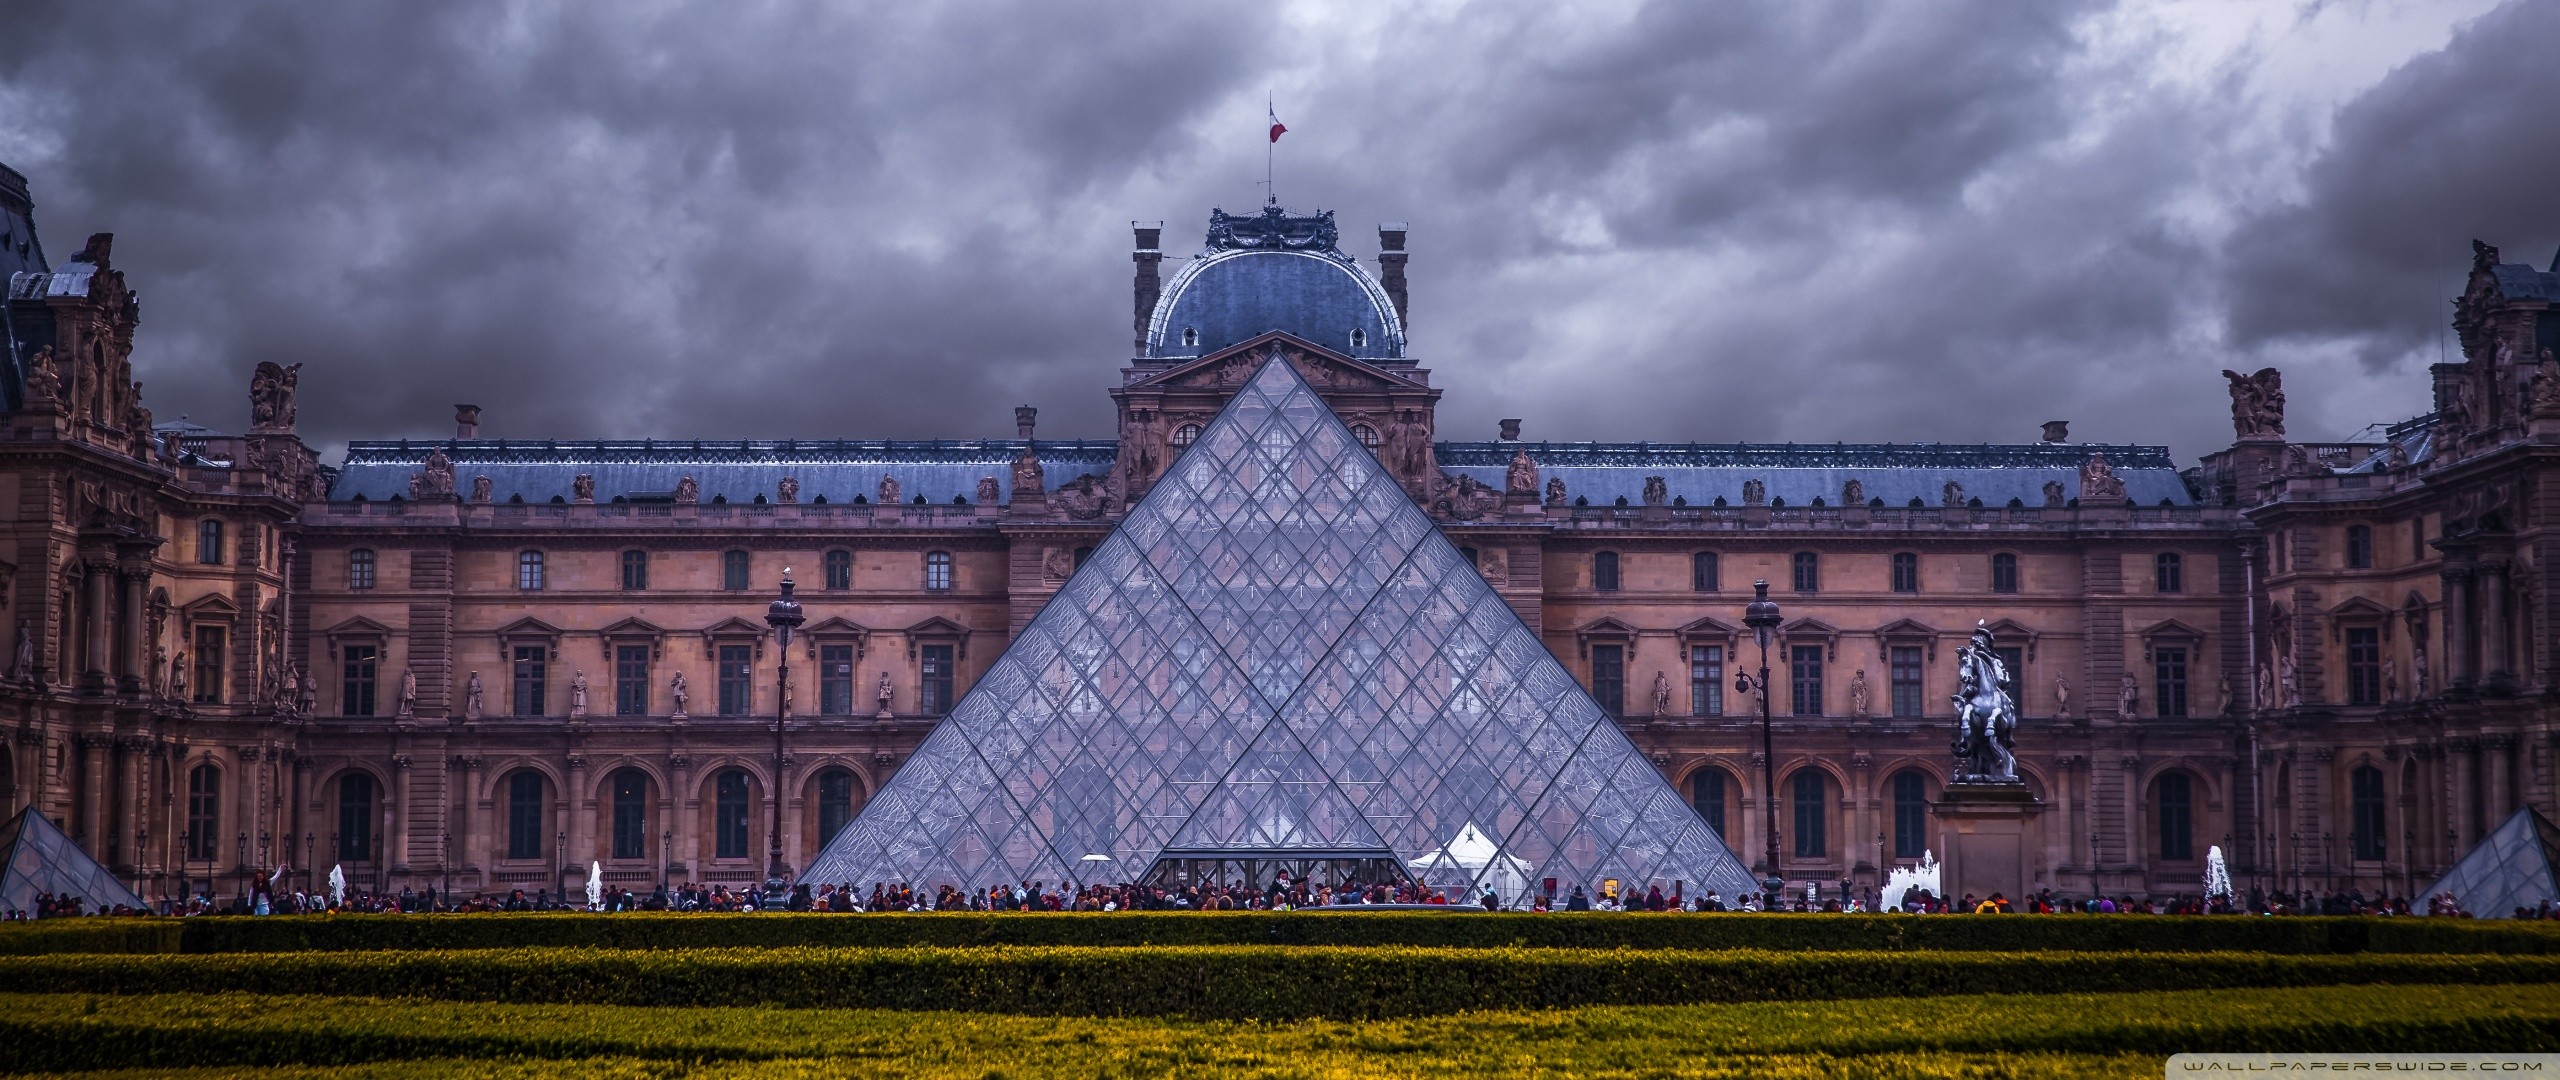 Louvre Museum Paris France 4K HD Desktop Wallpaper for 4K 2560x1080